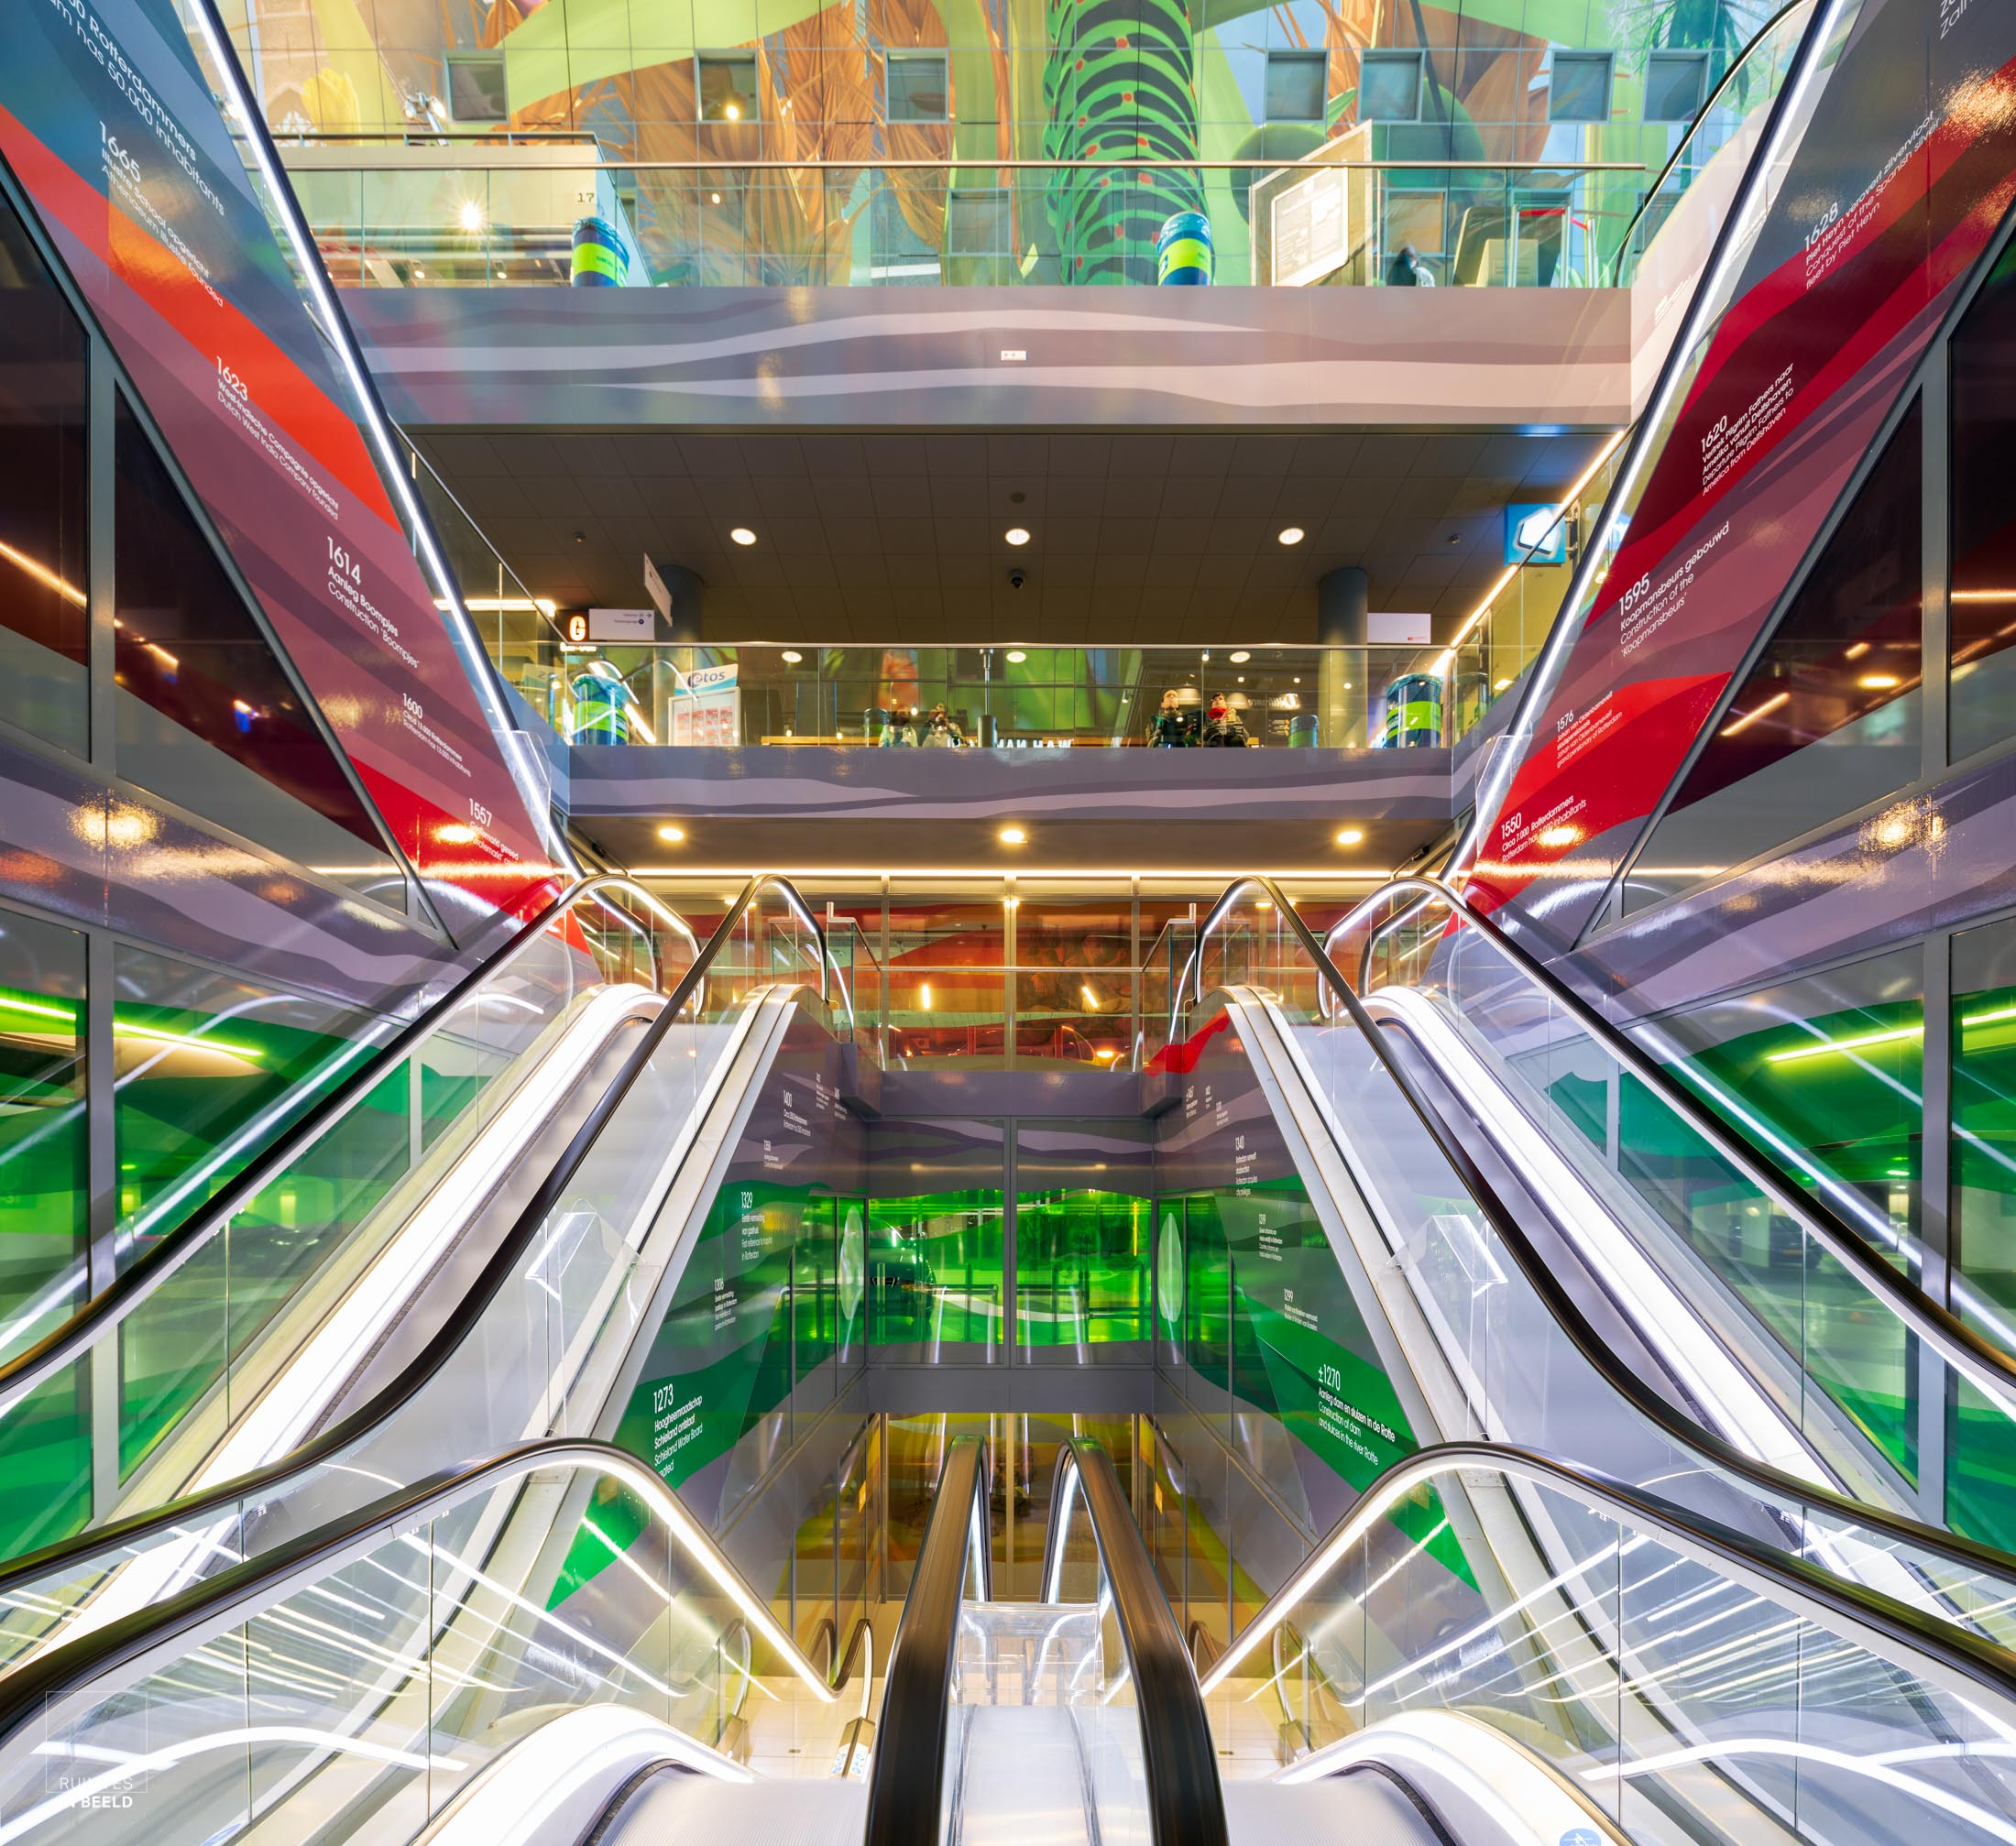 Roltrappen in Markthal Rotterdam | Moving stairs in Market hall, Rotterdam Netherlands